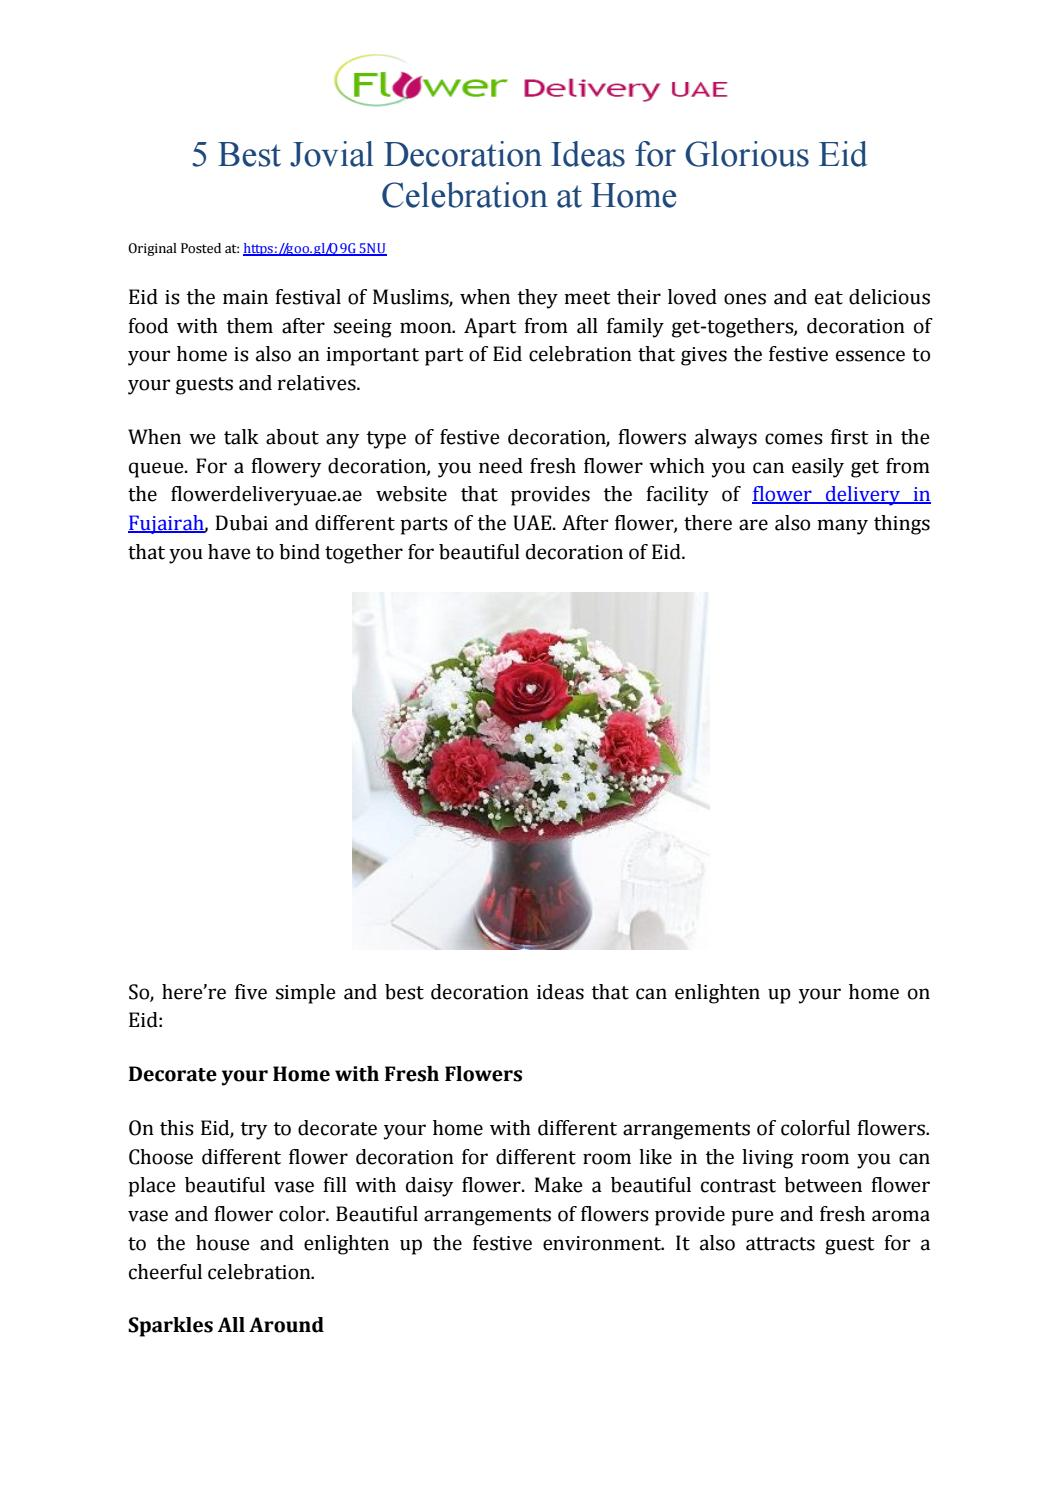 5 best jovial decoration ideas for glorious eid celebration at home 5 best jovial decoration ideas for glorious eid celebration at home by flower delivery uae issuu izmirmasajfo